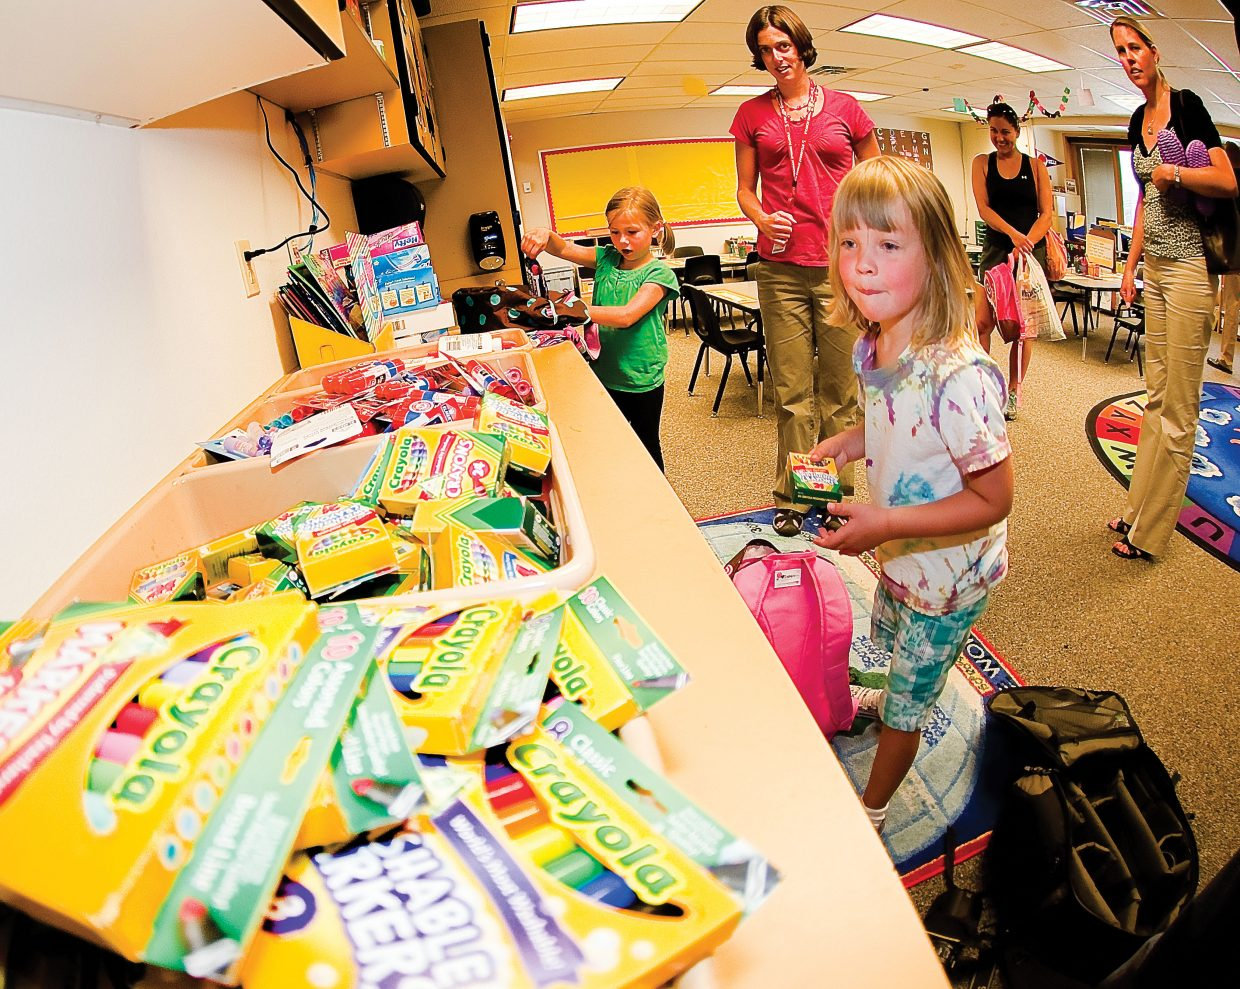 Kindergartners Kaela Pedersen, front, and Ava Rose drop off school supplies and meet their new teacher Hadley Nylen on Wednesday. The young students will begin their school year today.